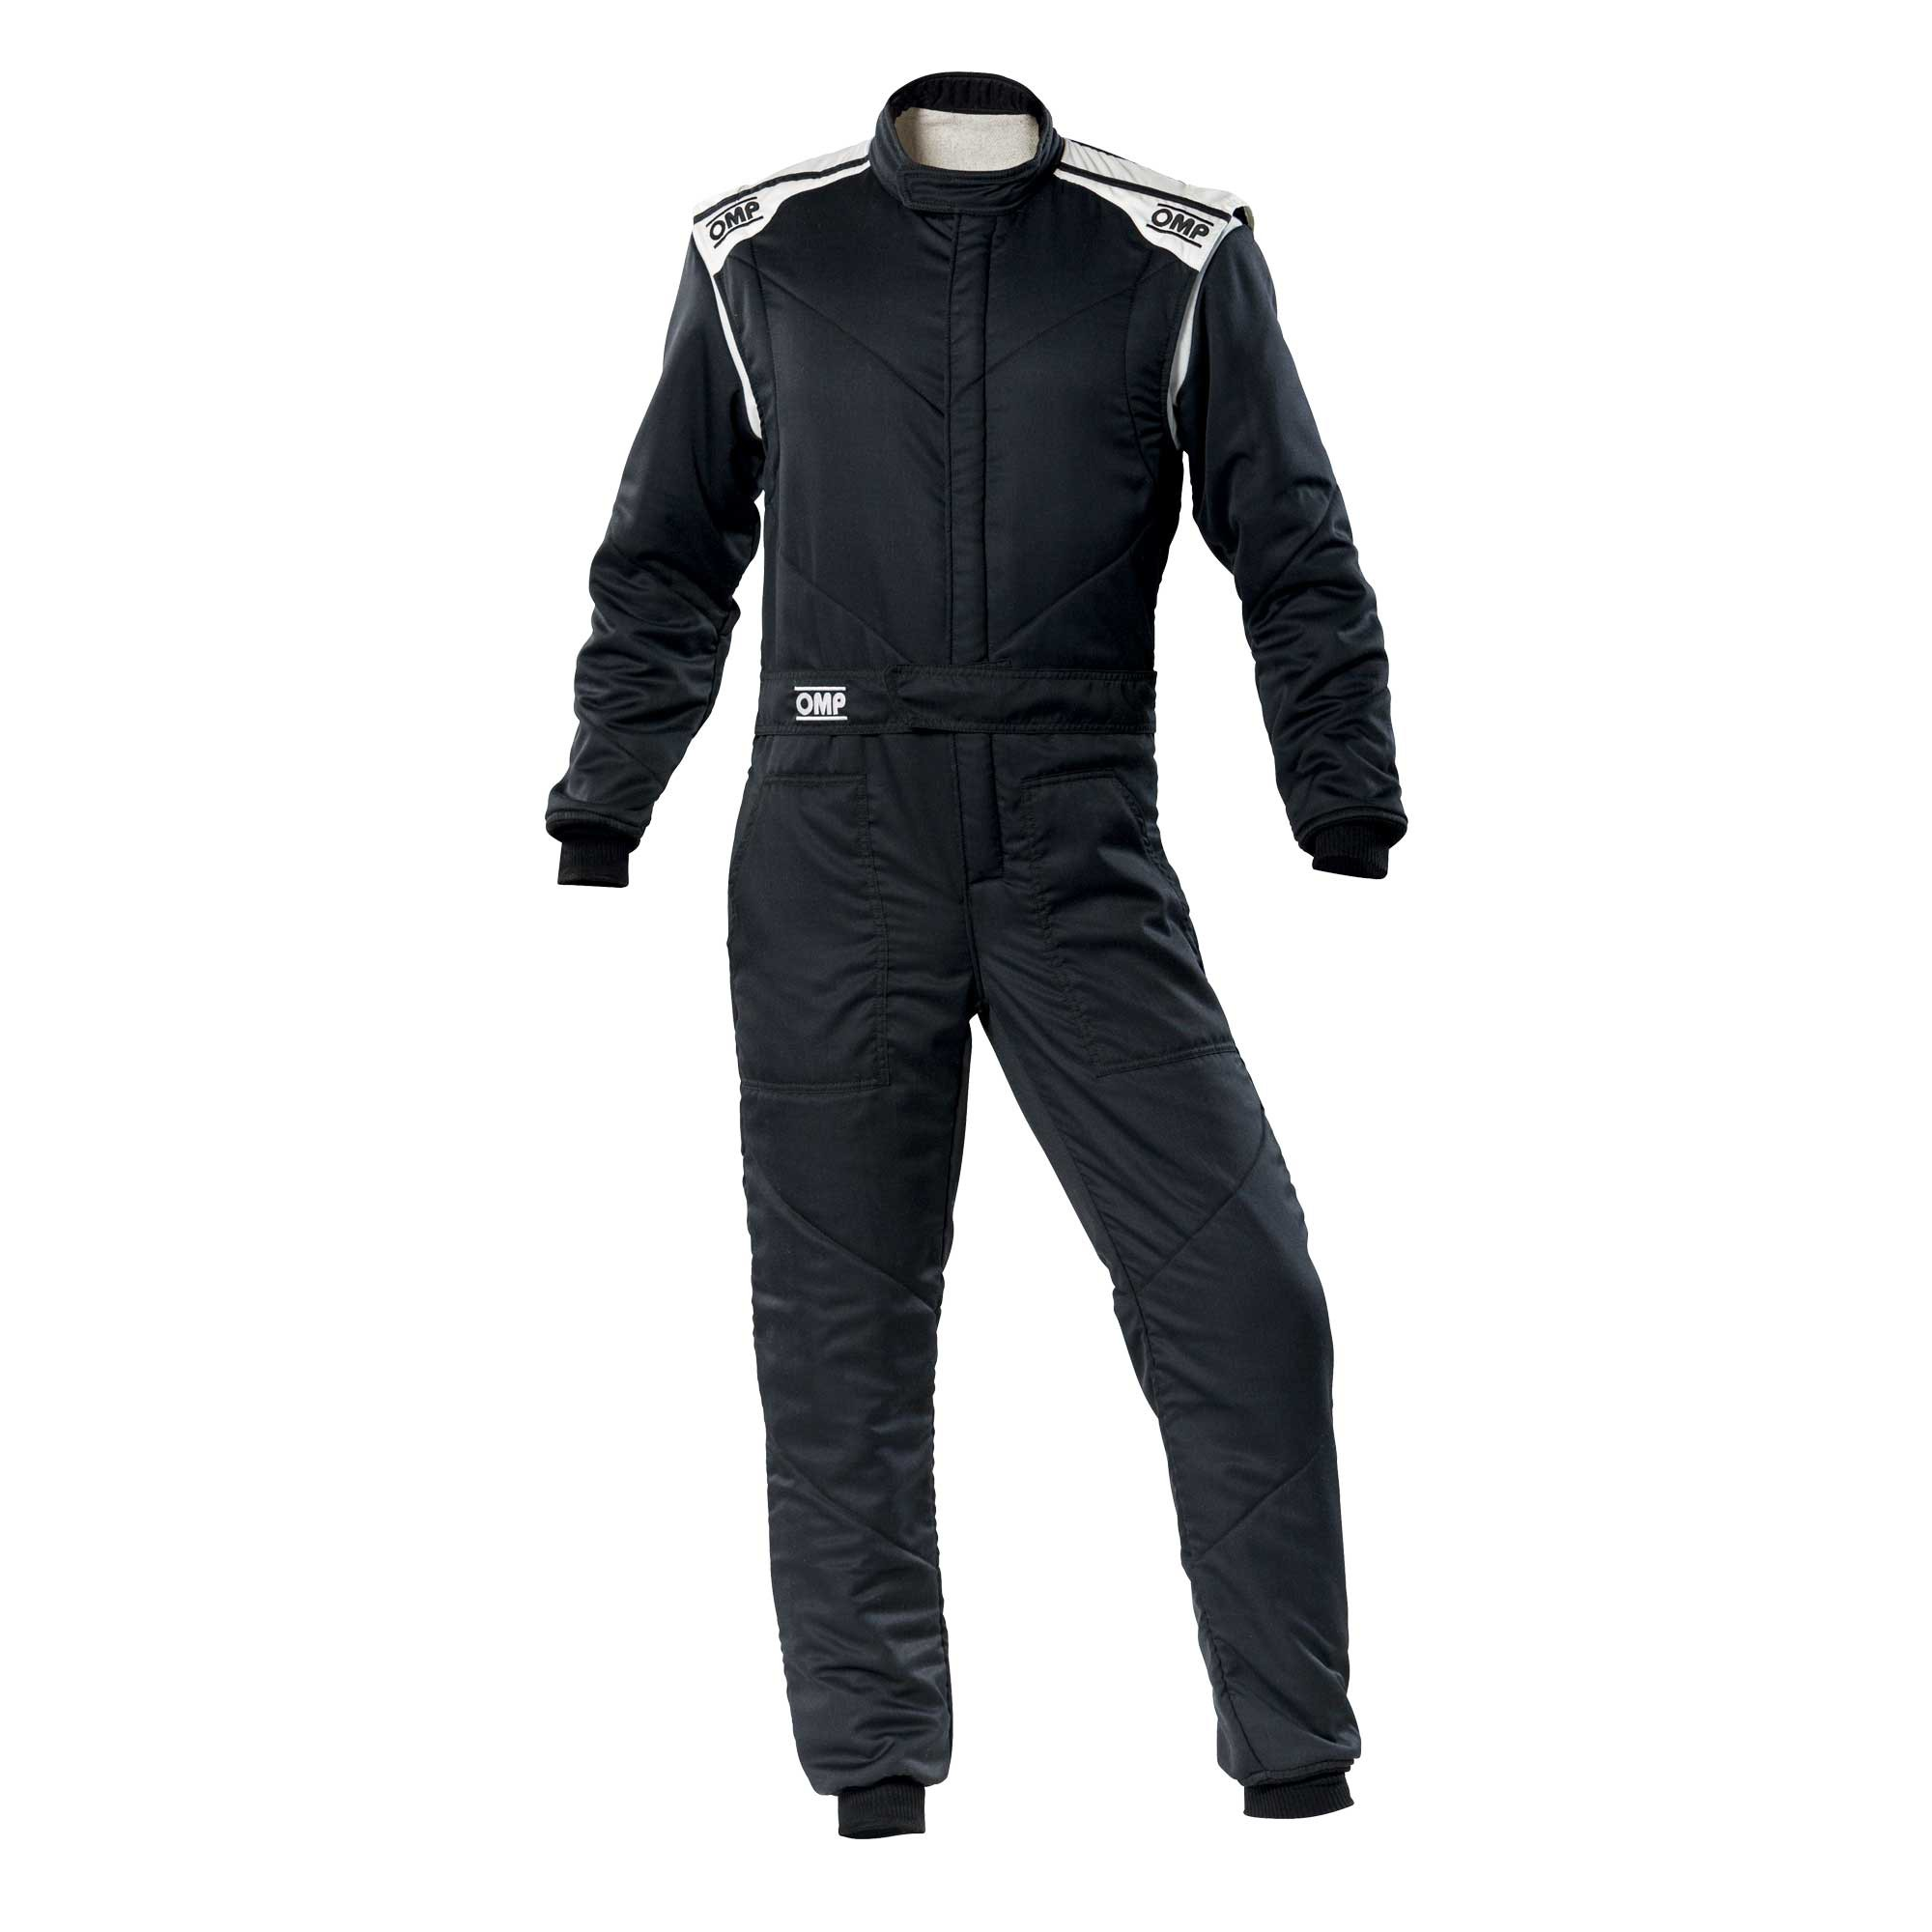 FIRST-S OVERALL BLACK SIZE 44 FIA 8856-2018